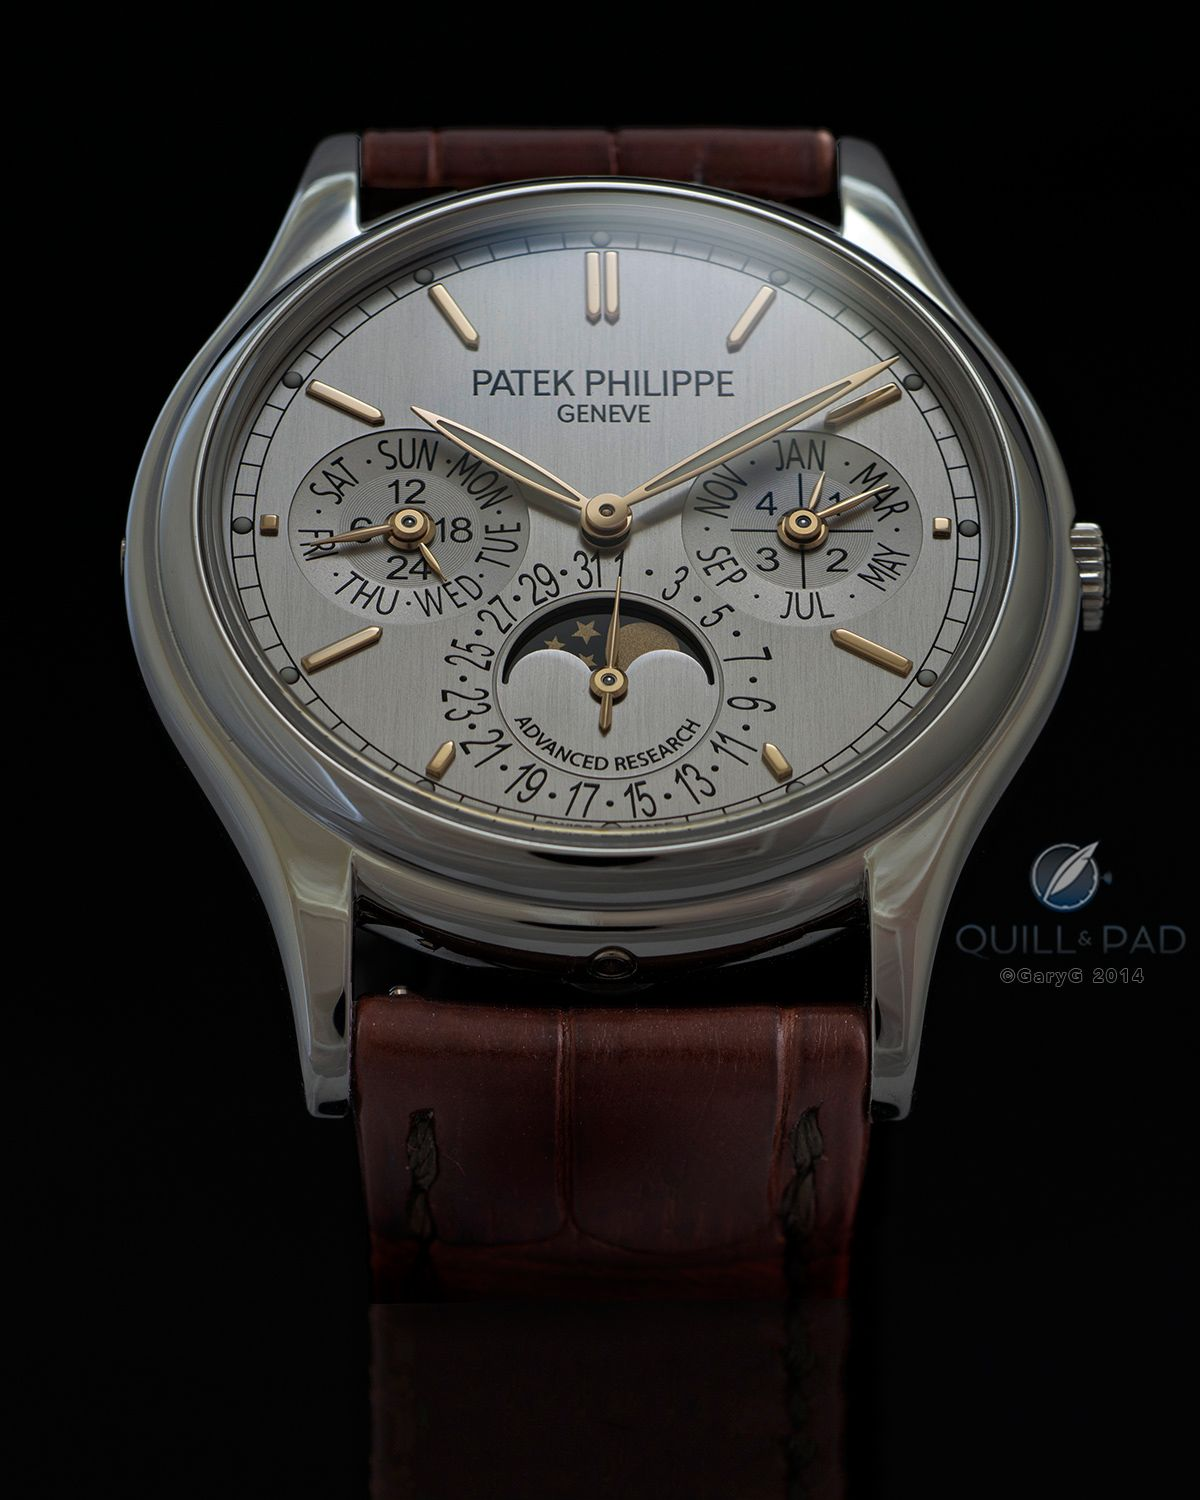 f480a4c25e4 Photography rule number 1 as applied to Patek Philippe s 5550P  start with  the light Click